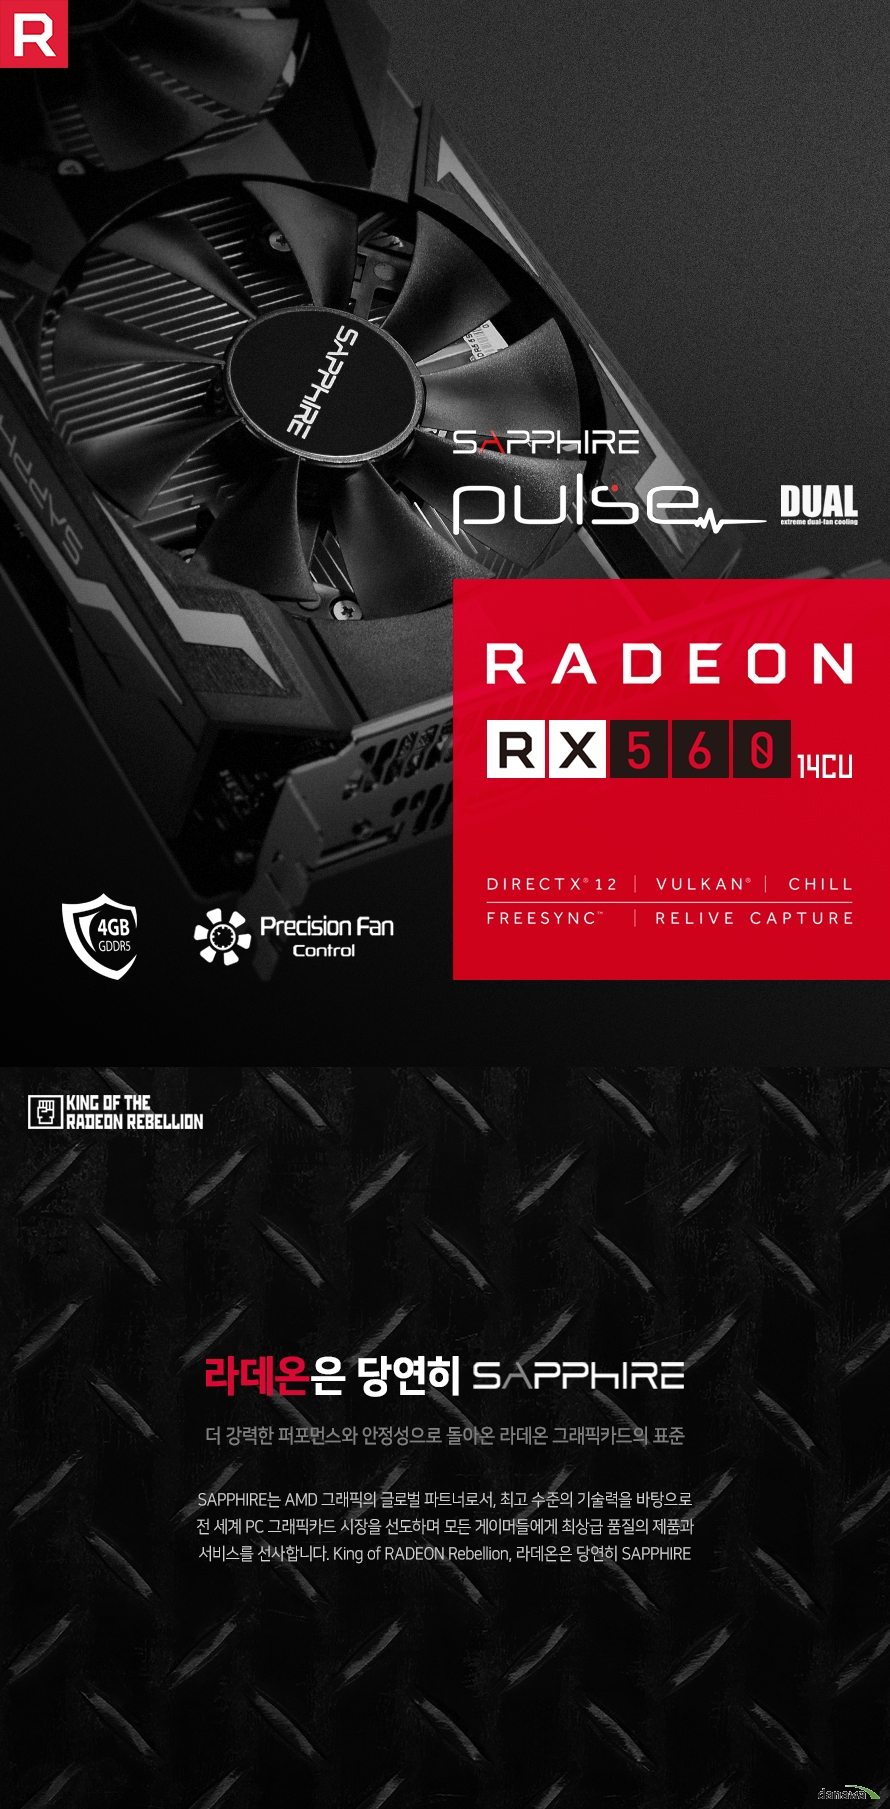 SAPPHIRE 라데온 RX 560 14CU PULSE Advantage Edition D5 4GB DUAL